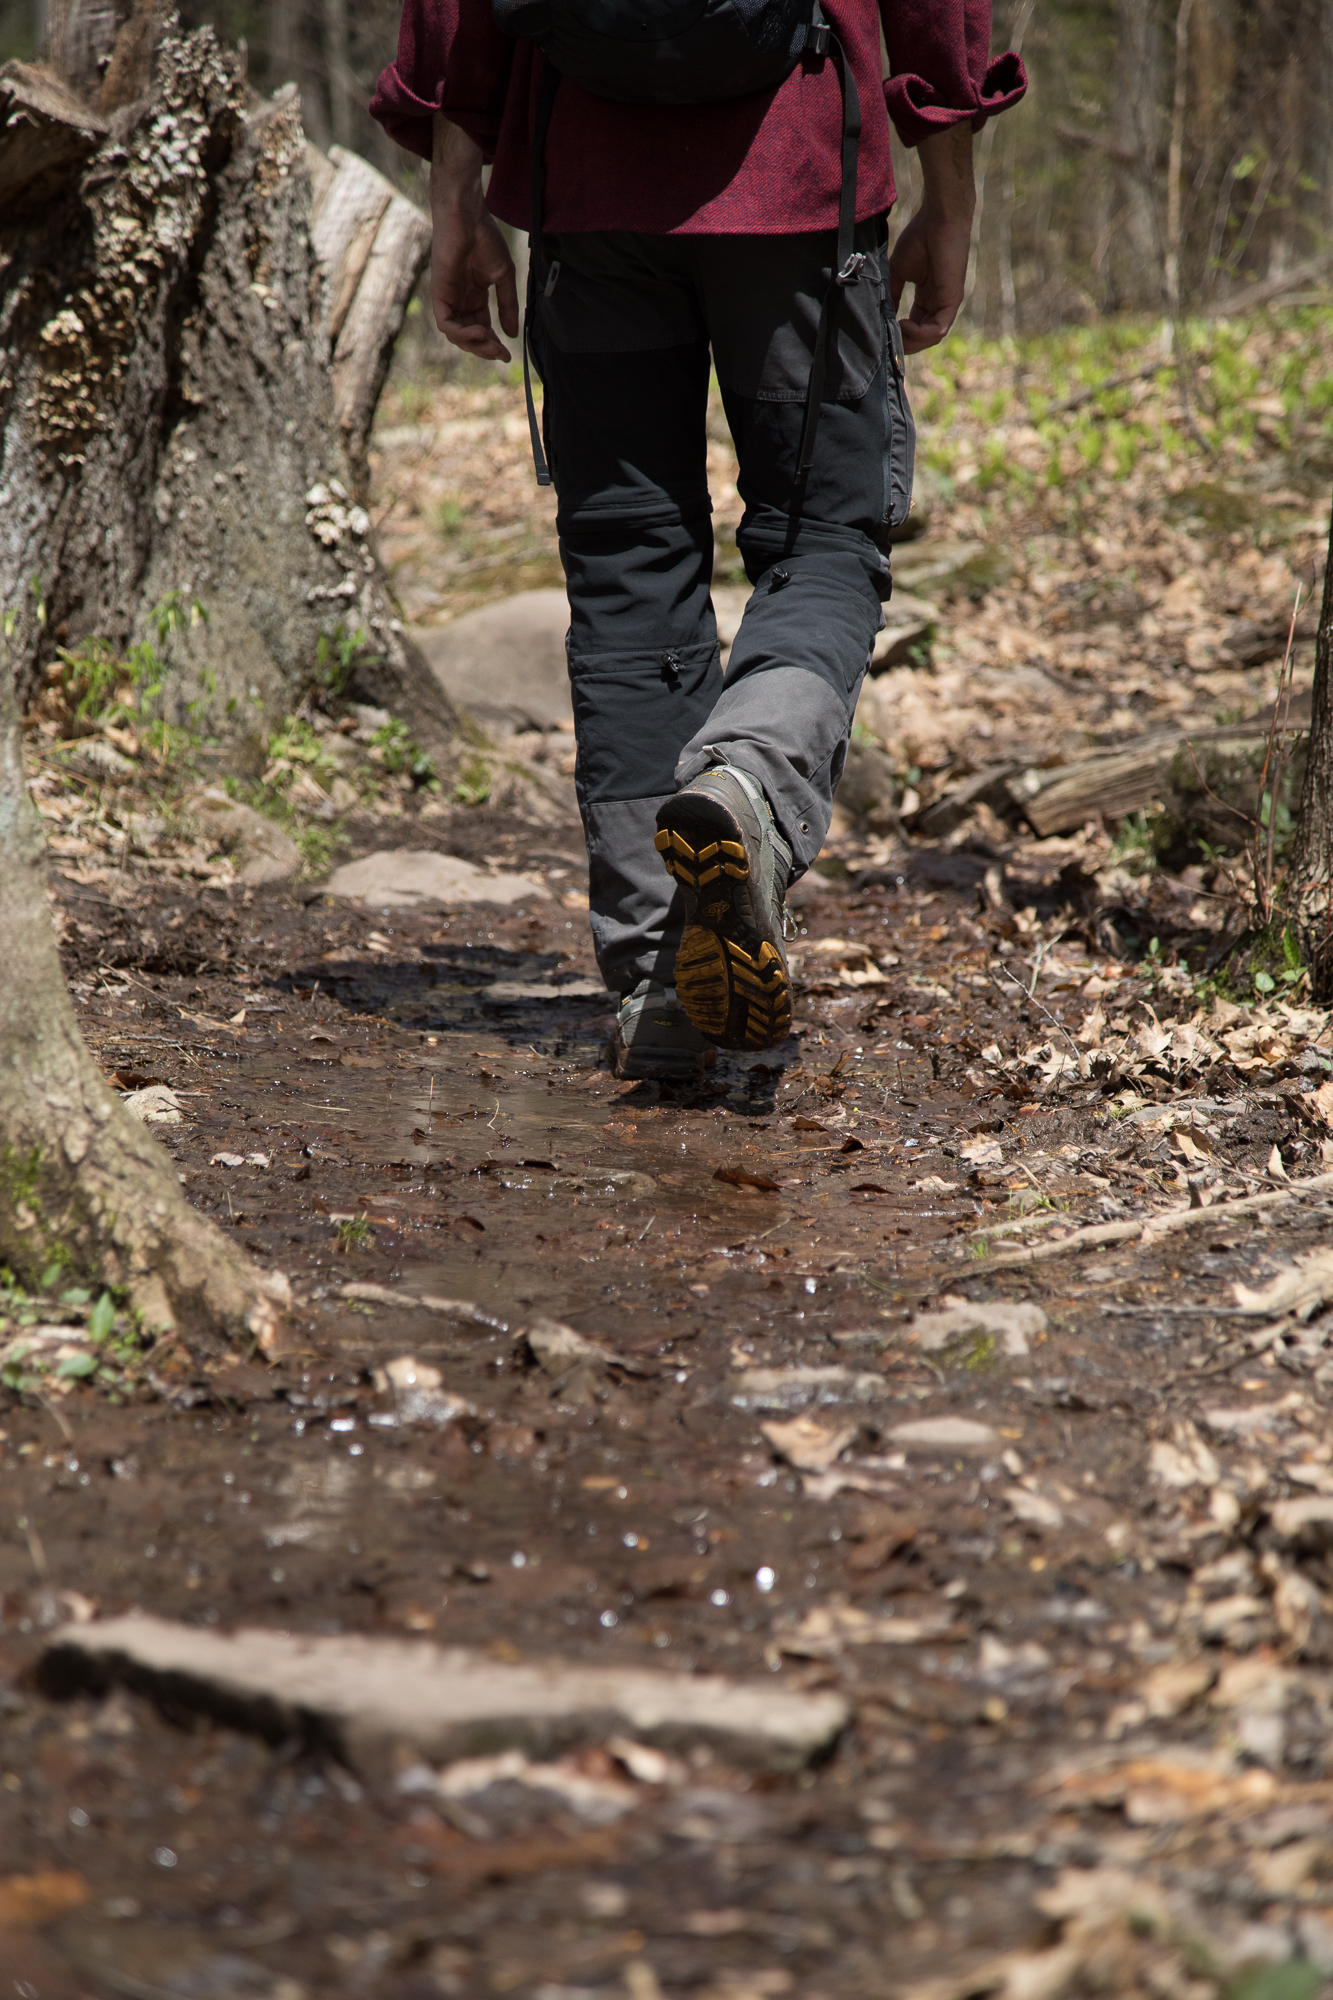 Walking through the center of trails whenever possible can make a big difference and lessen our impact over time.